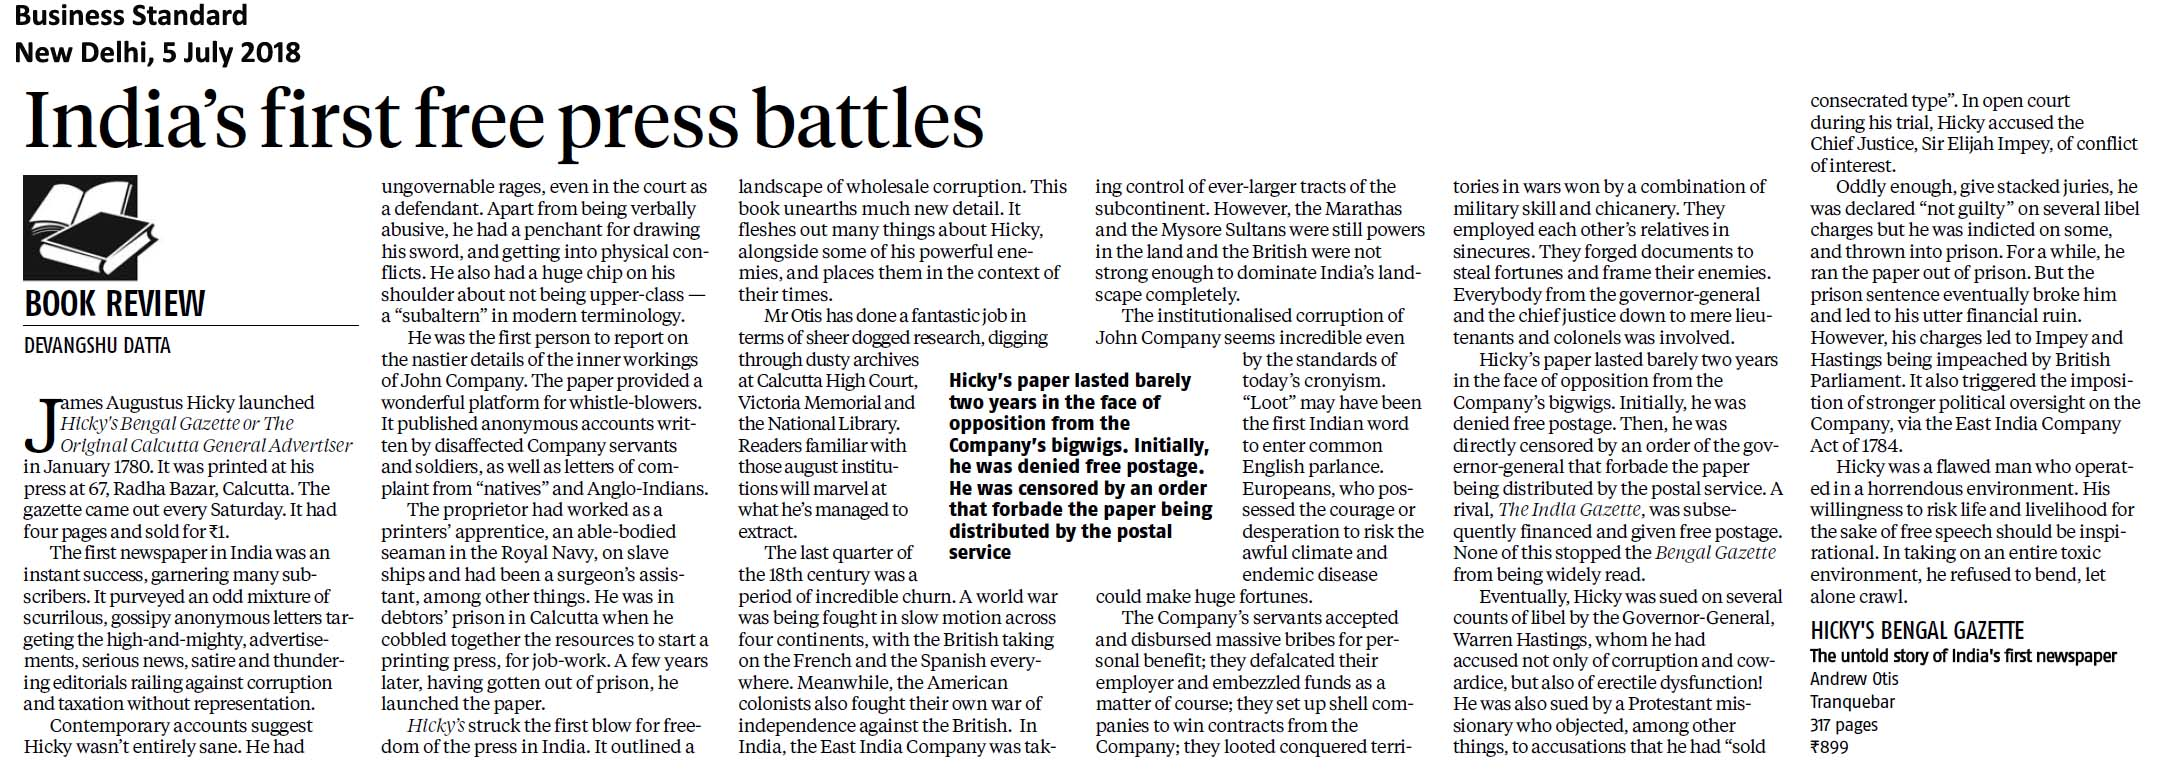 Business Standard Devangshu Datta Review of Hickys Bengal Gazette